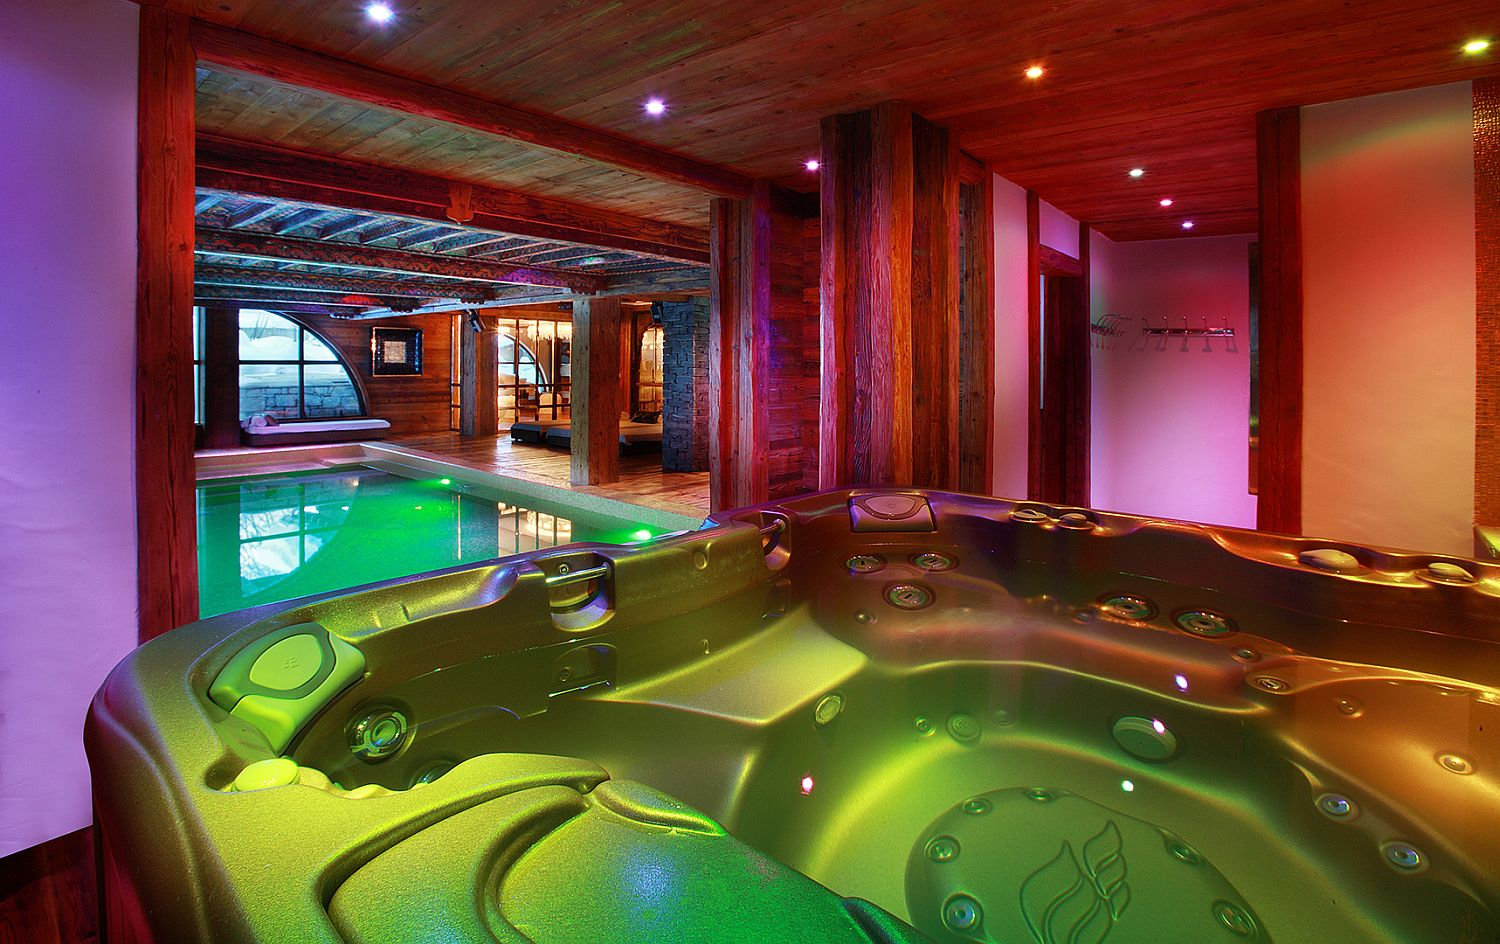 Relaxing spa, Jacuzzi and pool area of one of the best luxury chalets in France